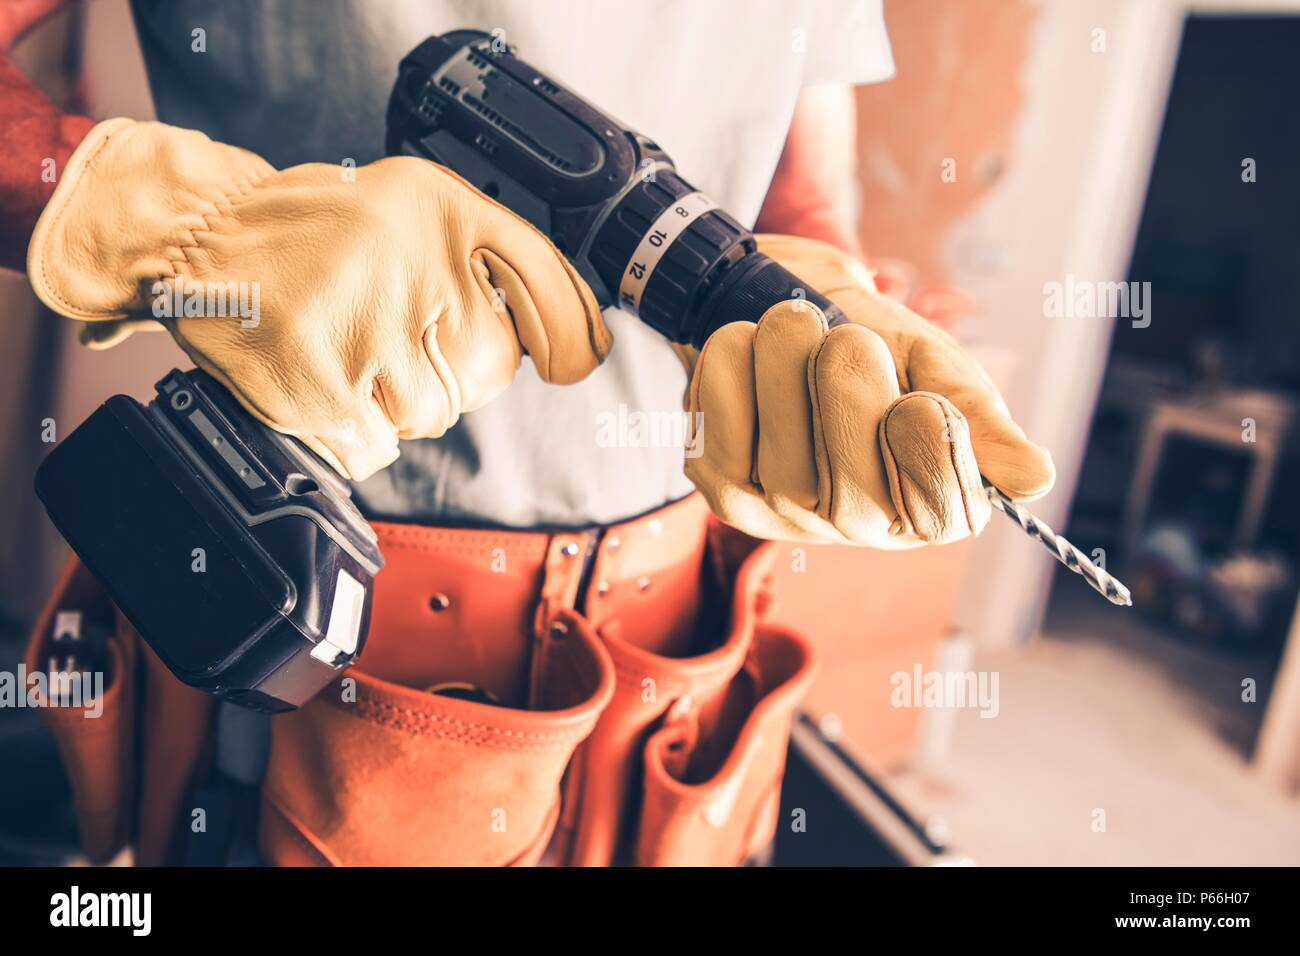 Contractor Worker with Power Tool Preparing For Drywall Installation. - Stock Image